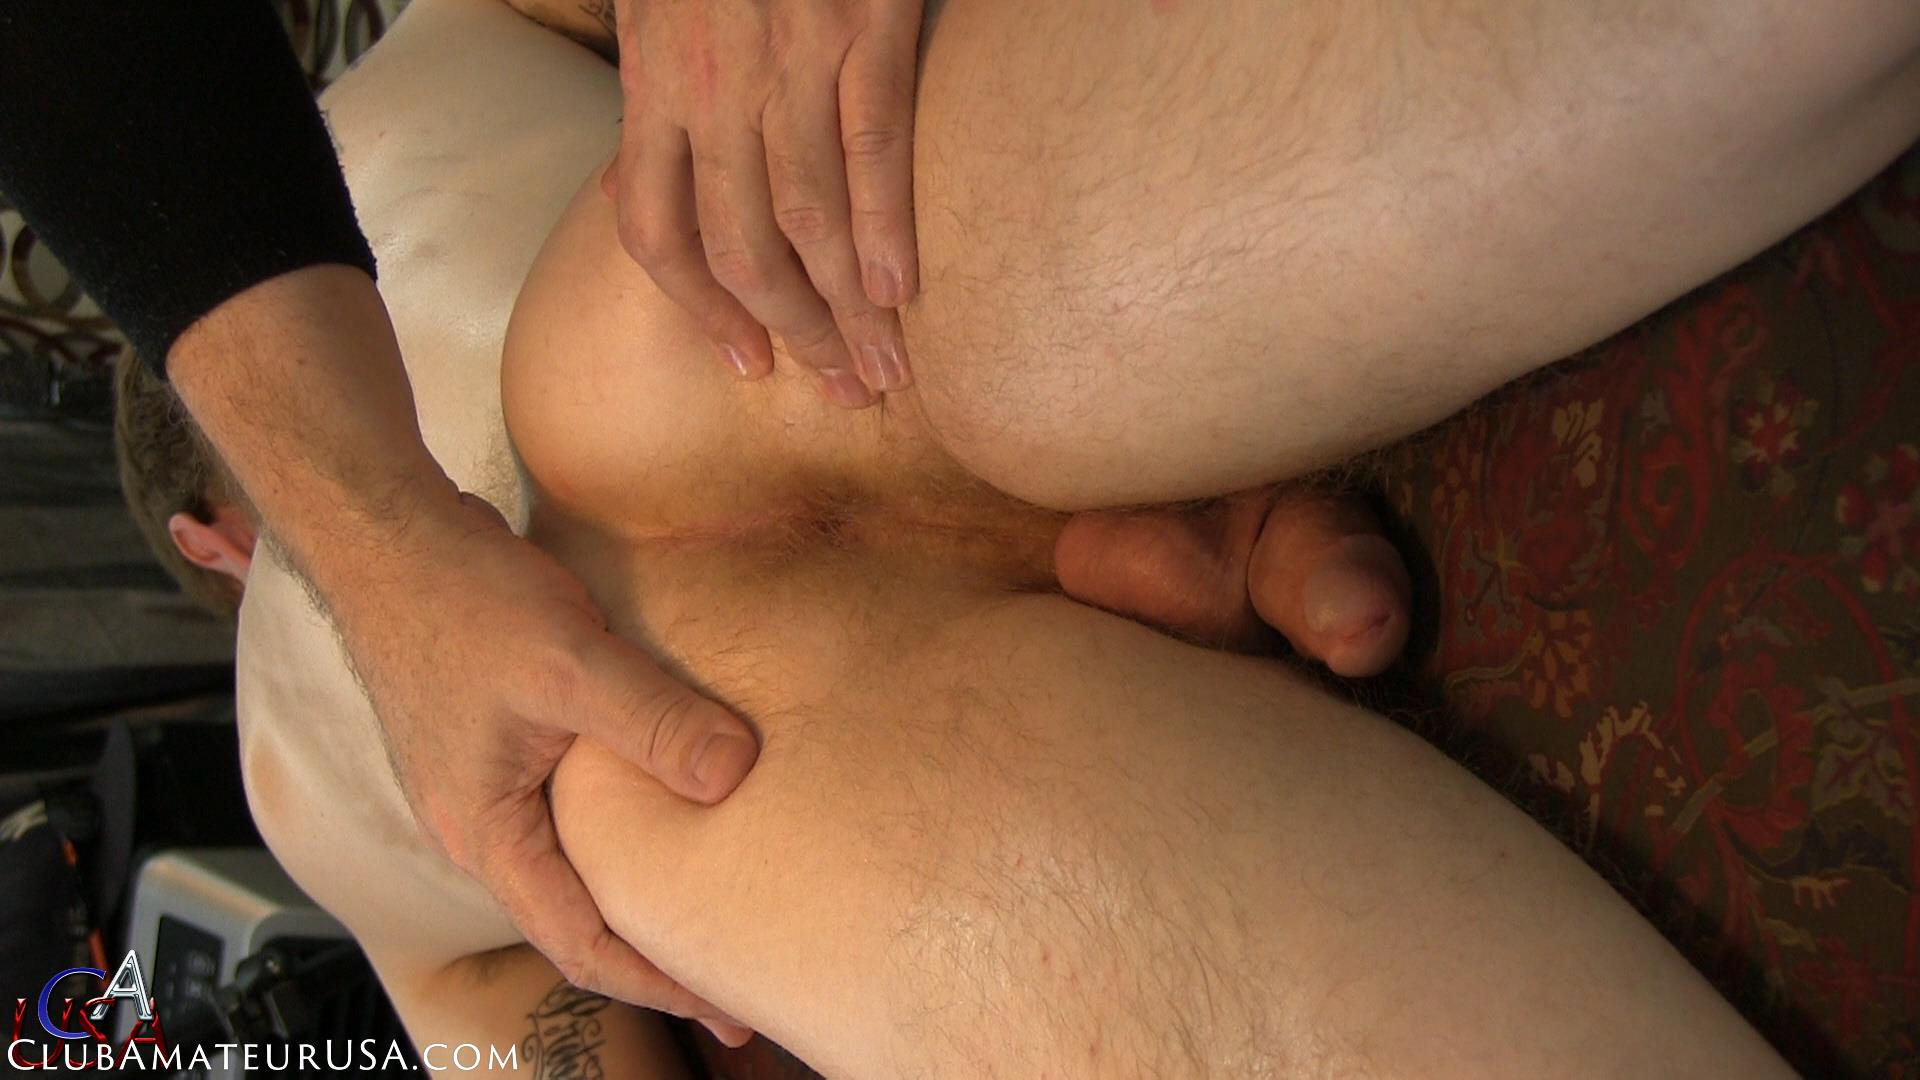 Club-Amateur-Axel-Straight-Redneck-Cock-08 Amateur Straight Redneck Gets Finger Fucked, Sucked and Jerked Off